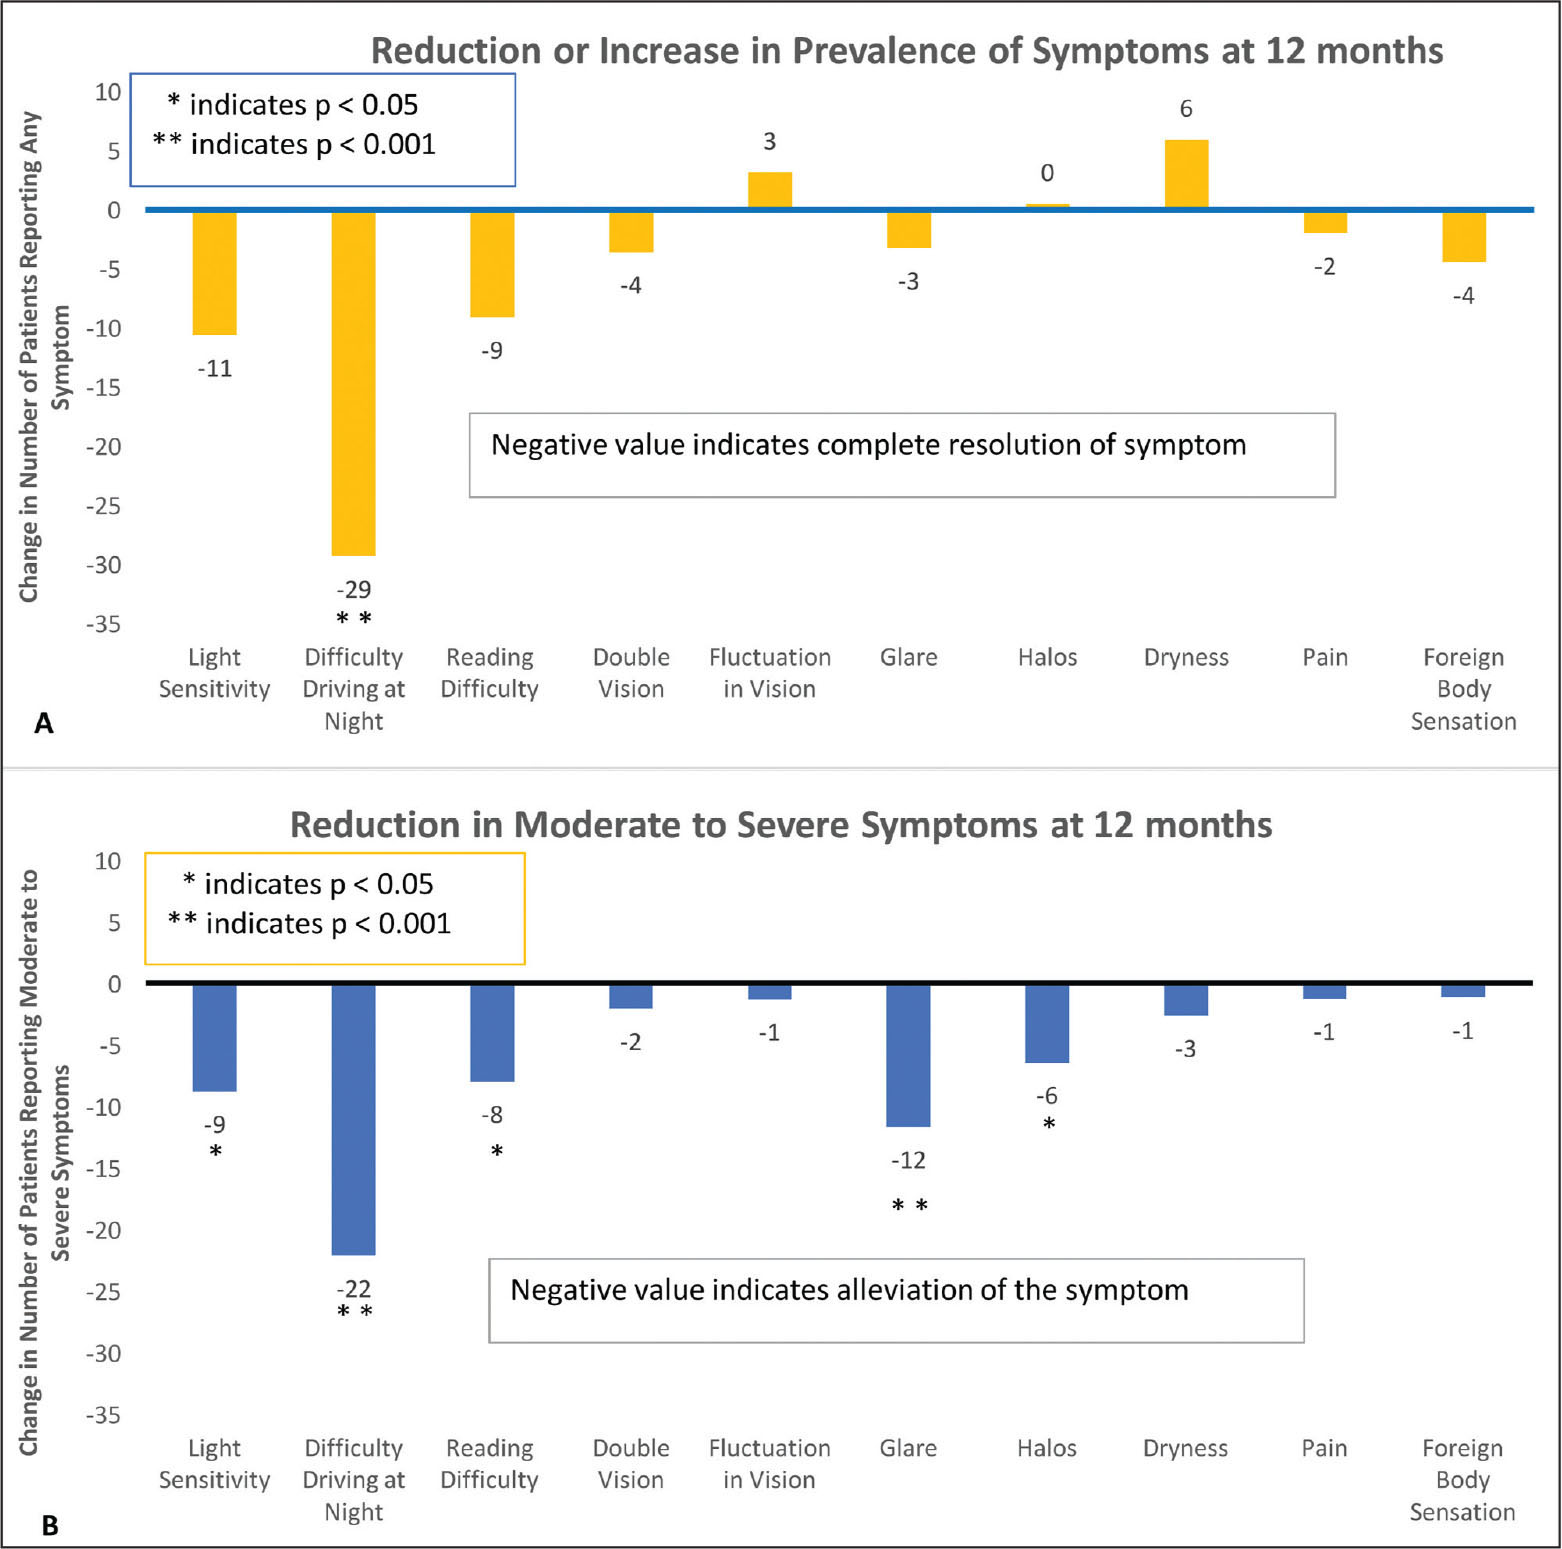 Summary of changes that occurred from preoperative to 12 months. (A) Increase or decrease in prevalence of a symptom at 12 months. Decrease in prevalence is indicated by a negative bar. More patients reported no symptoms postoperatively. (B) Postoperative reduction in moderate to severe symptoms at 12 months. A reduction is indicated by a negative bar. Fewer patients complained of moderate to severe symptoms at 12 months than they did preoperatively.